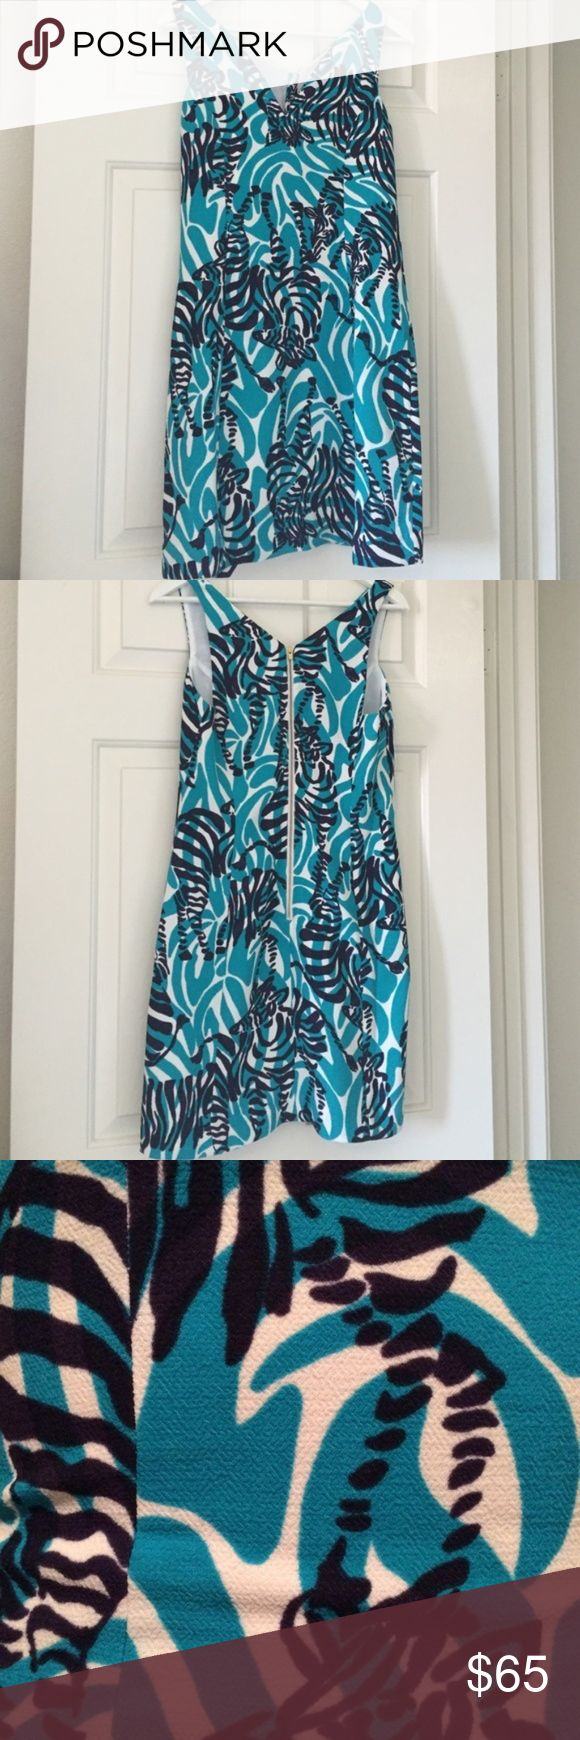 "Lilly Pulitzer ""I'm Game"" Zebra Dress Size 0 Excellent used condition! The Madeline sleeveless fit and flare dress brings a whole new meaning to fun party dresses. Fit and flare flatters your figure and this print is a conversation starter for sure. Excuse me miss, is that a zebra on your dress? YES!  Sleeveless Dress With Deep Notch And Center Back Exposed Zipper.  19"" From Natural Waist To Hem.  Lightweight Crepe - Printed (100% Polyester). Lilly Pulitzer Dresses Mini"